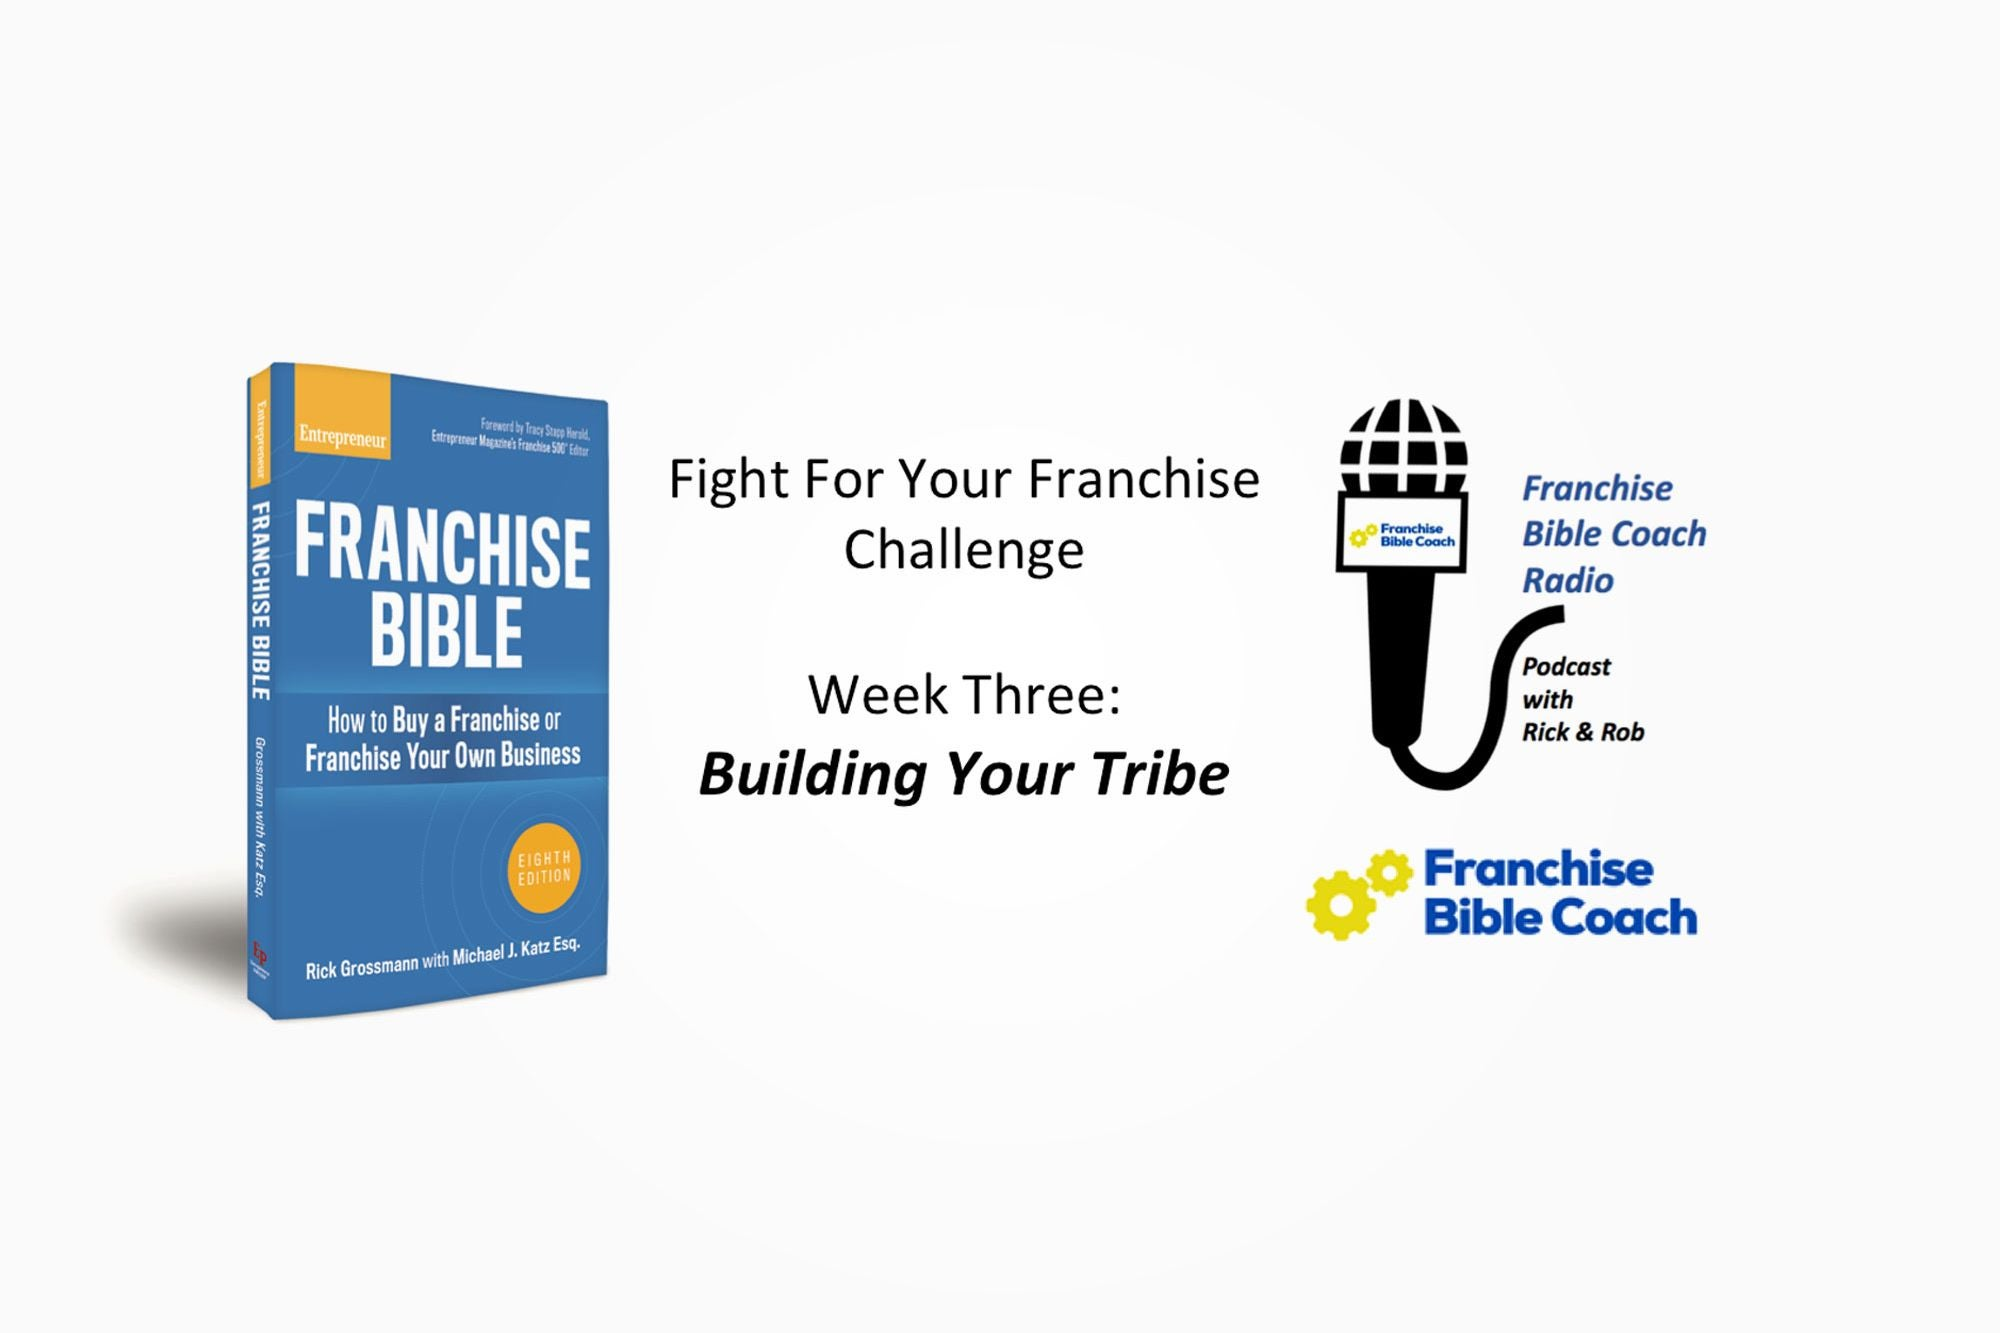 Fight for Your Franchise Challenge, Week 3: Building Your Tribe